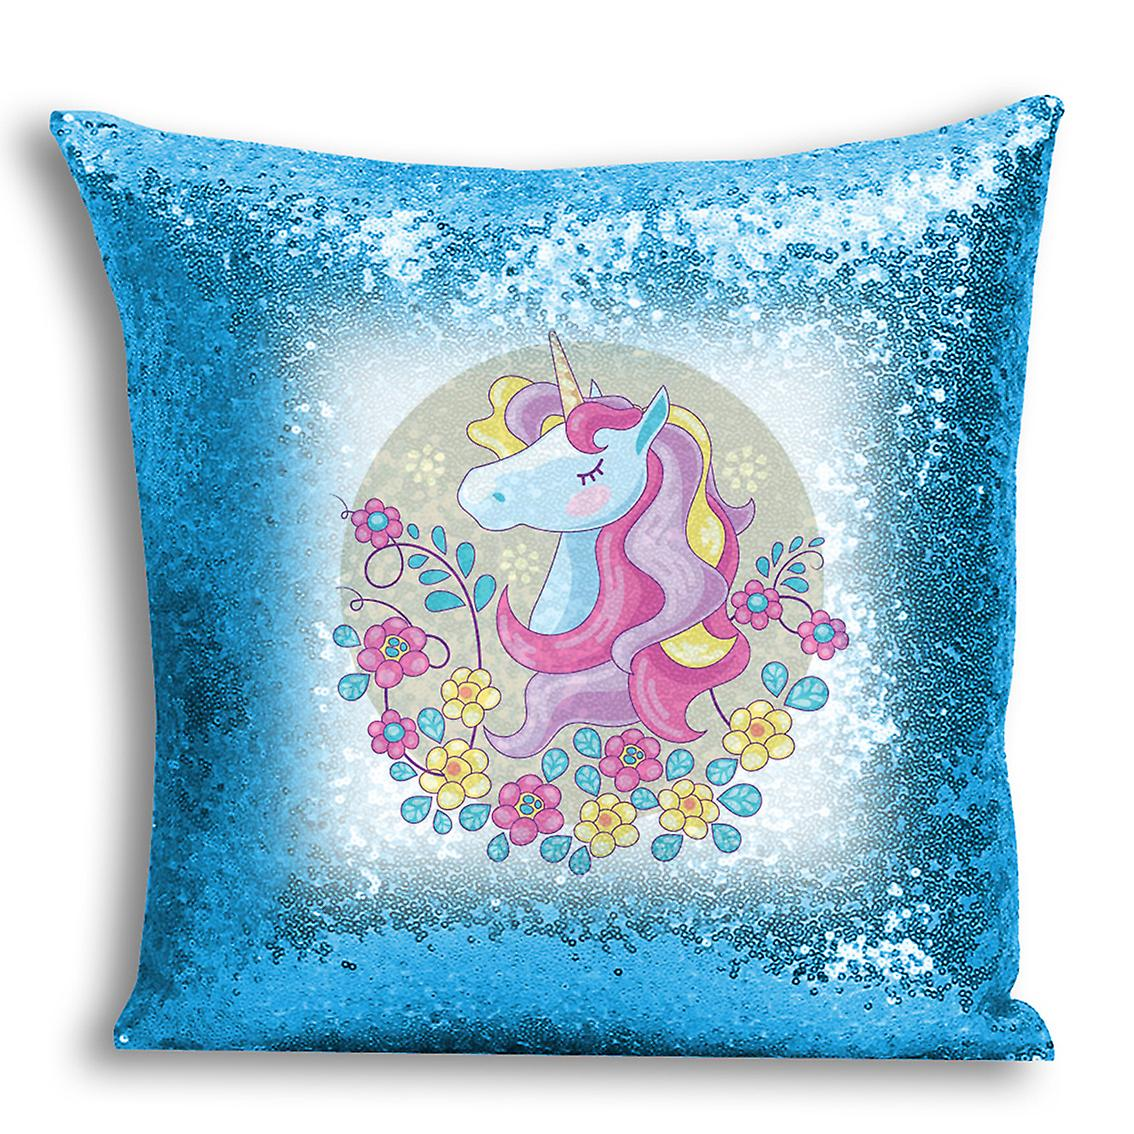 5 Blue I Cover With Printed Sequin tronixsUnicorn Home Inserted For Design Decor CushionPillow 7gIYbv6fy